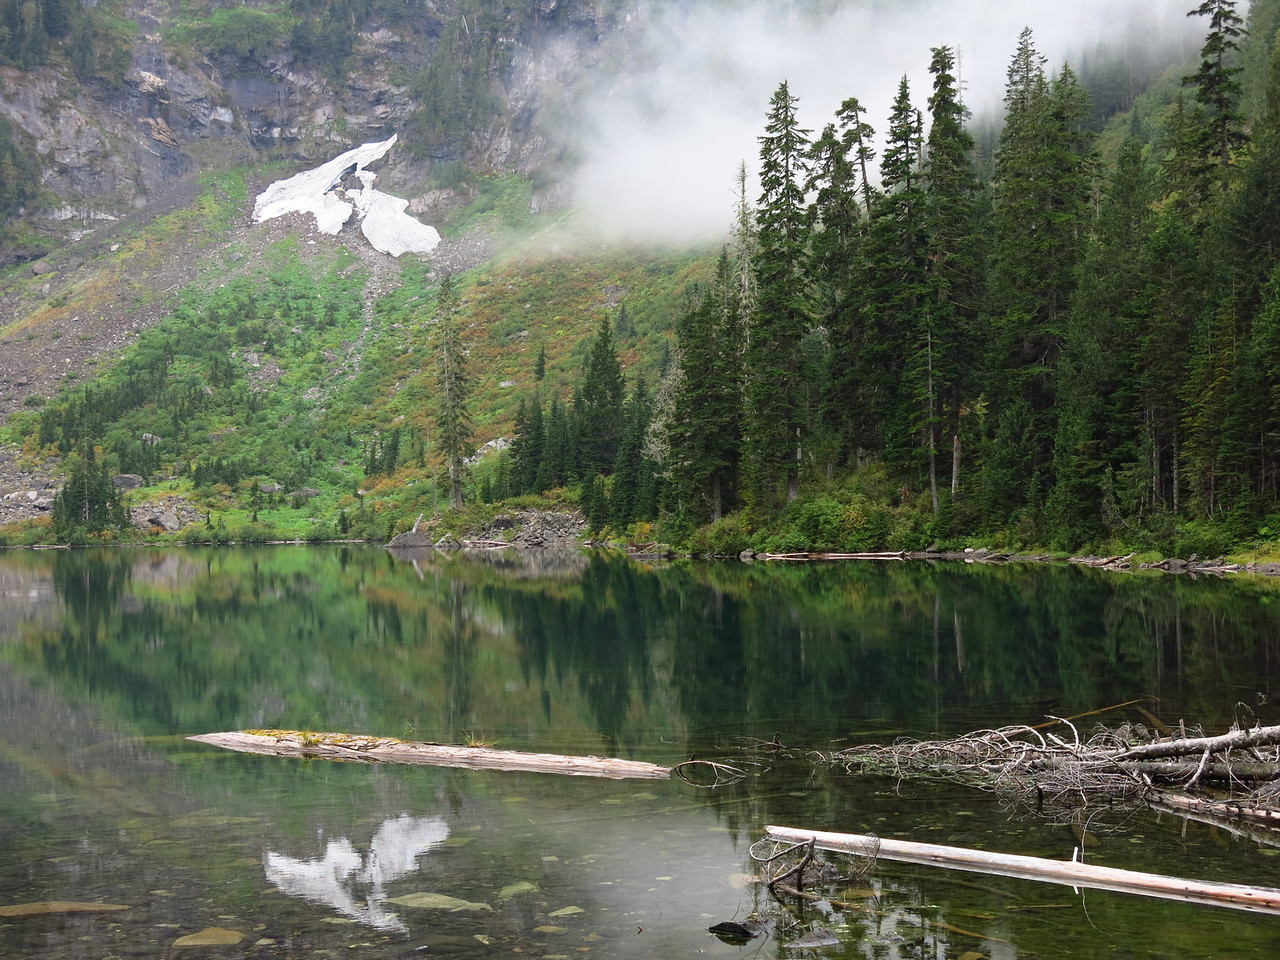 The deep green water, semi-translucent and reflective at the same time, is a fascinating feature of many alpine lakes in the Cascade Mountains.